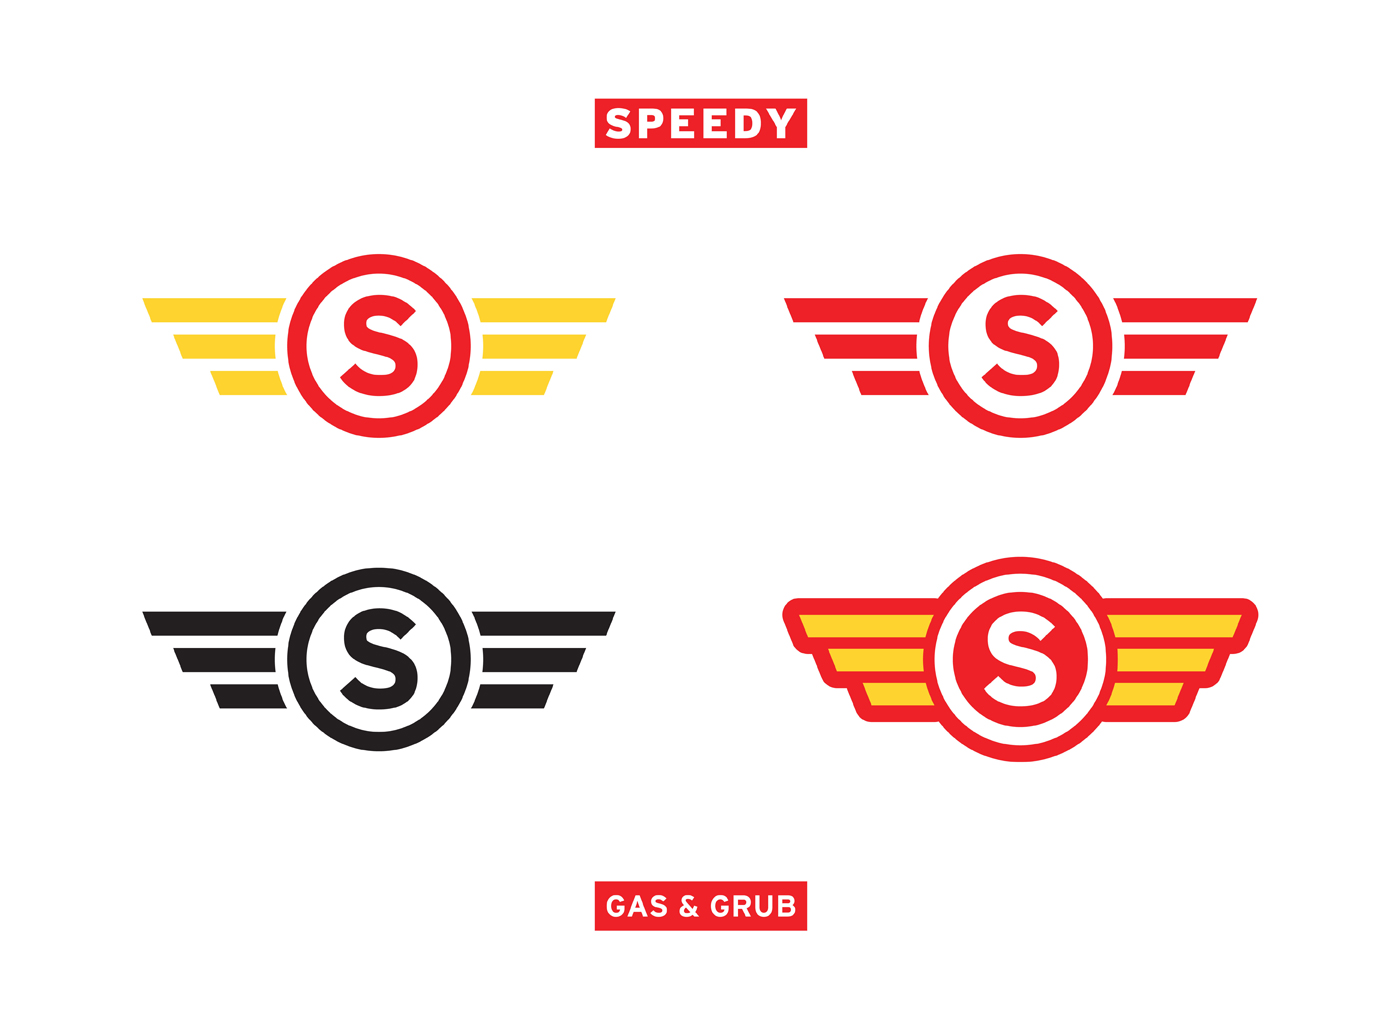 speedy gas graphic design branding secondary logos